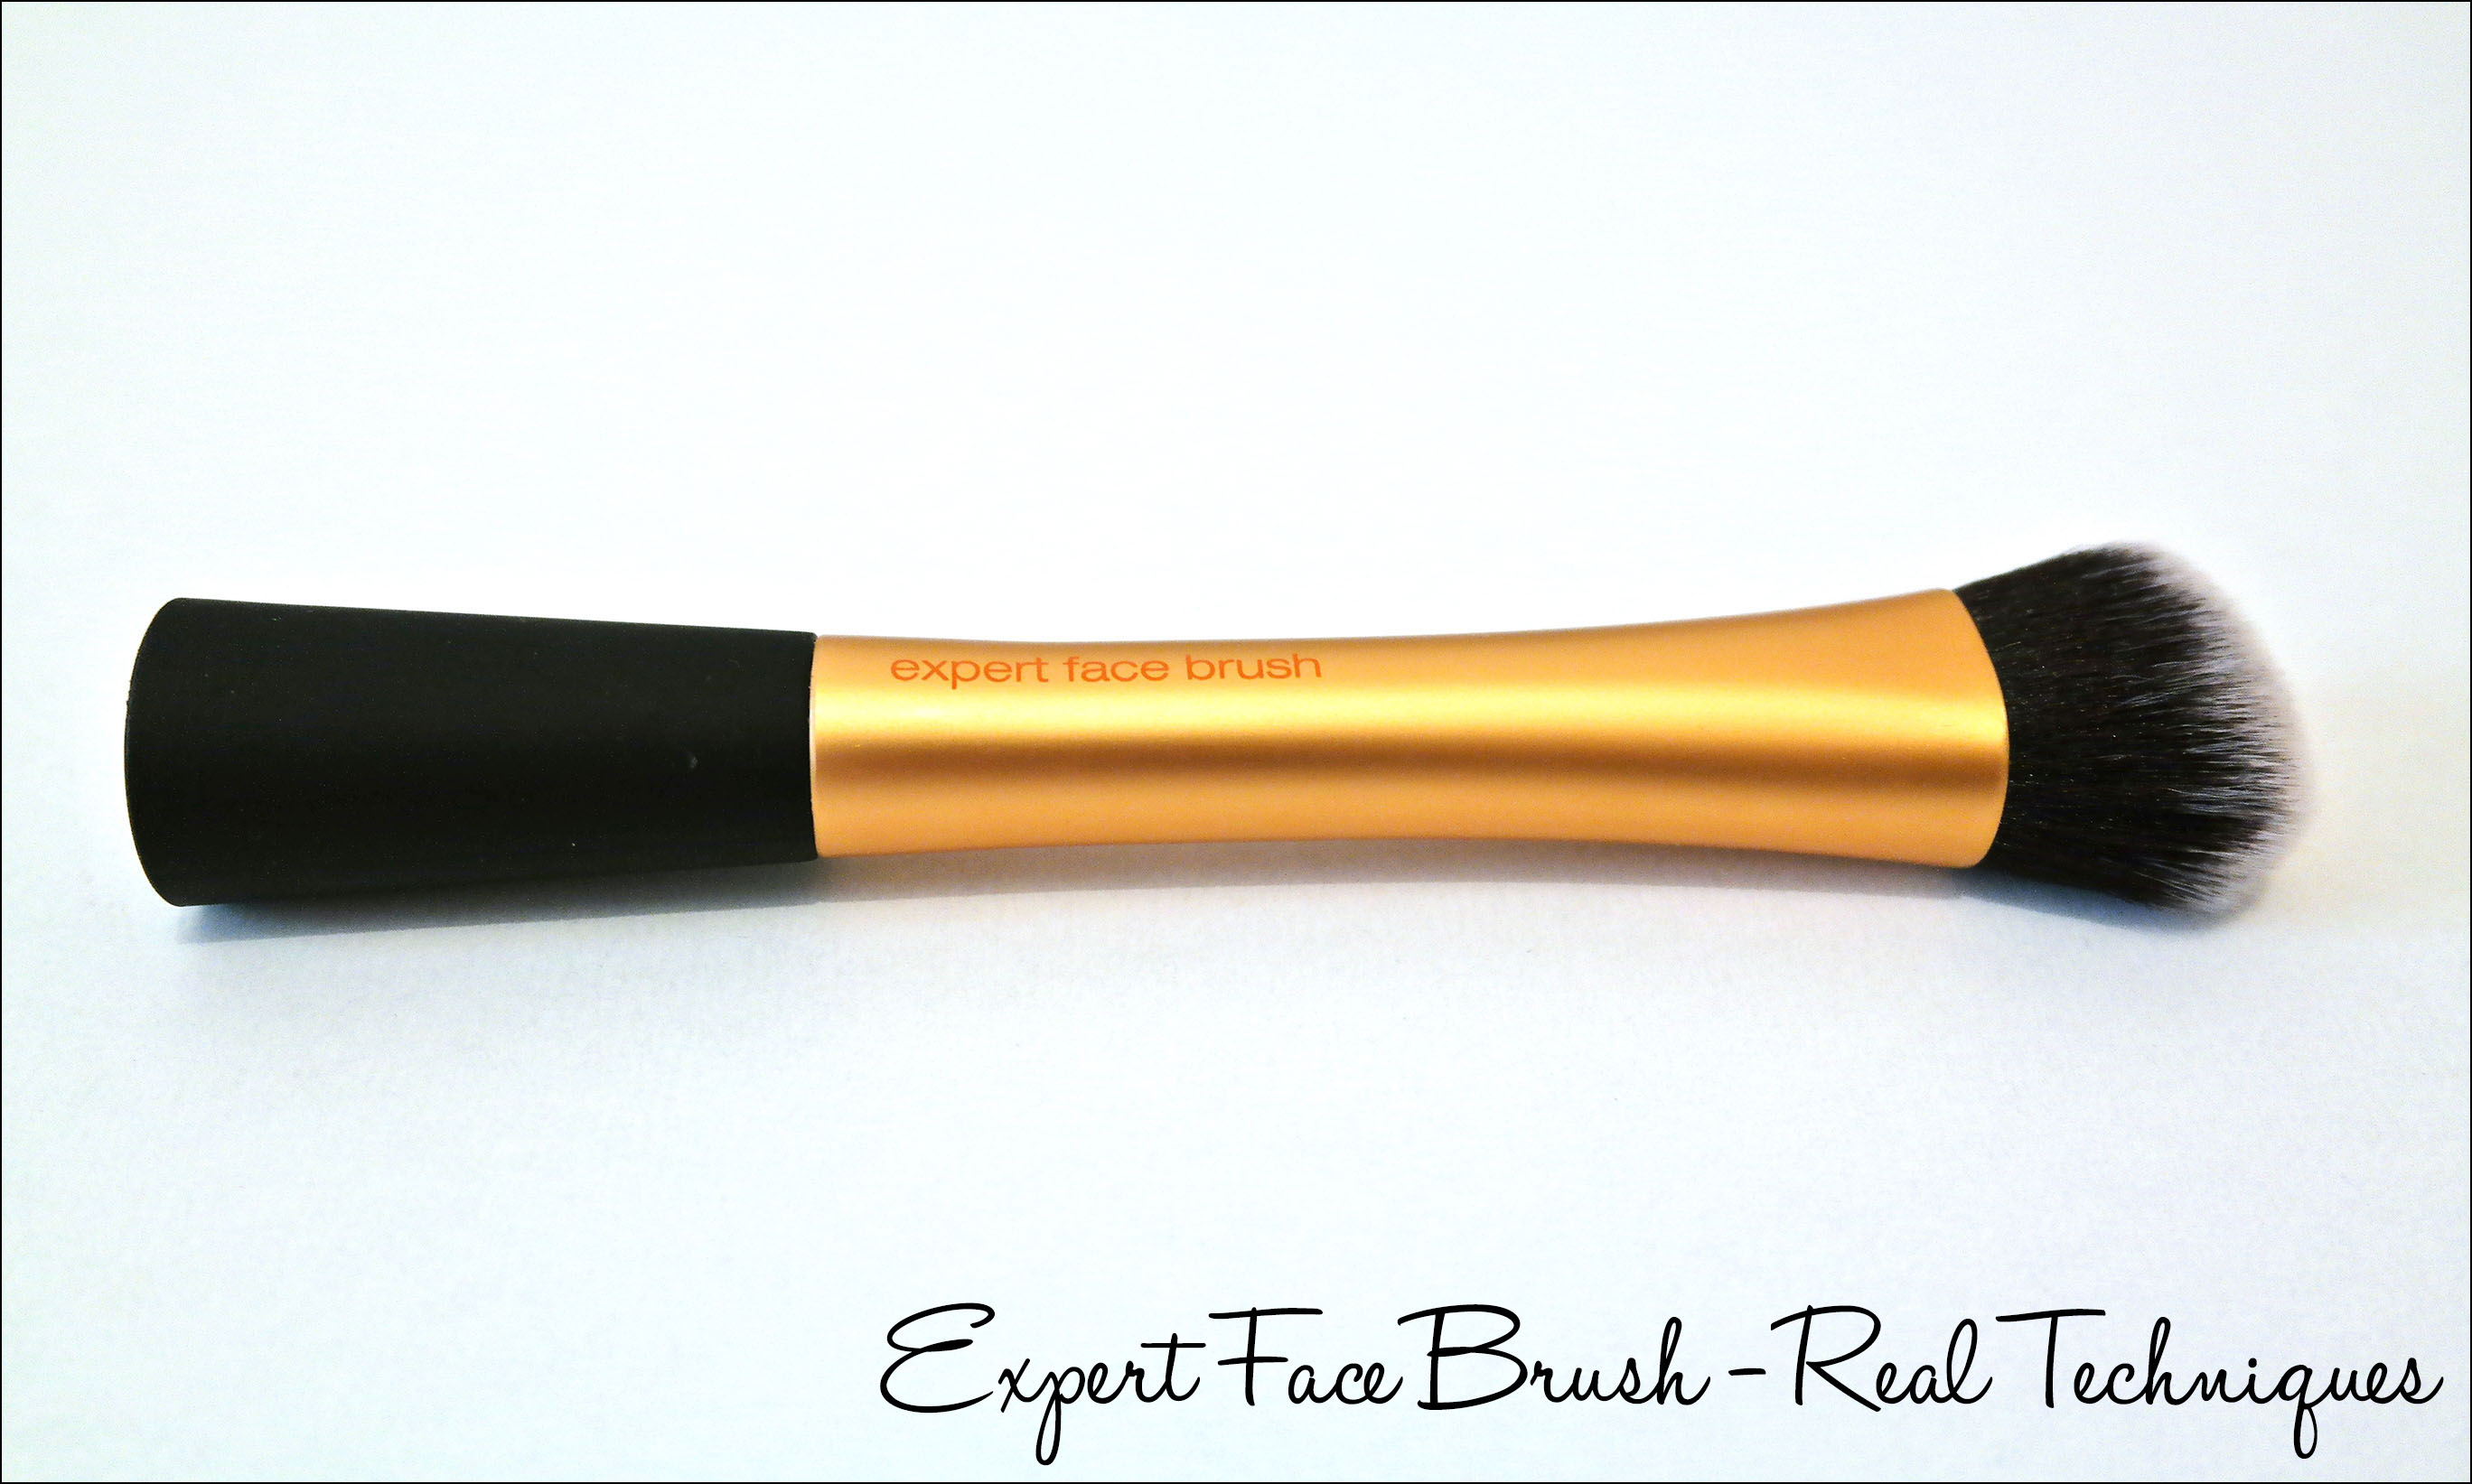 pinceaux, pinceau, teint, real techniques, expert face brush